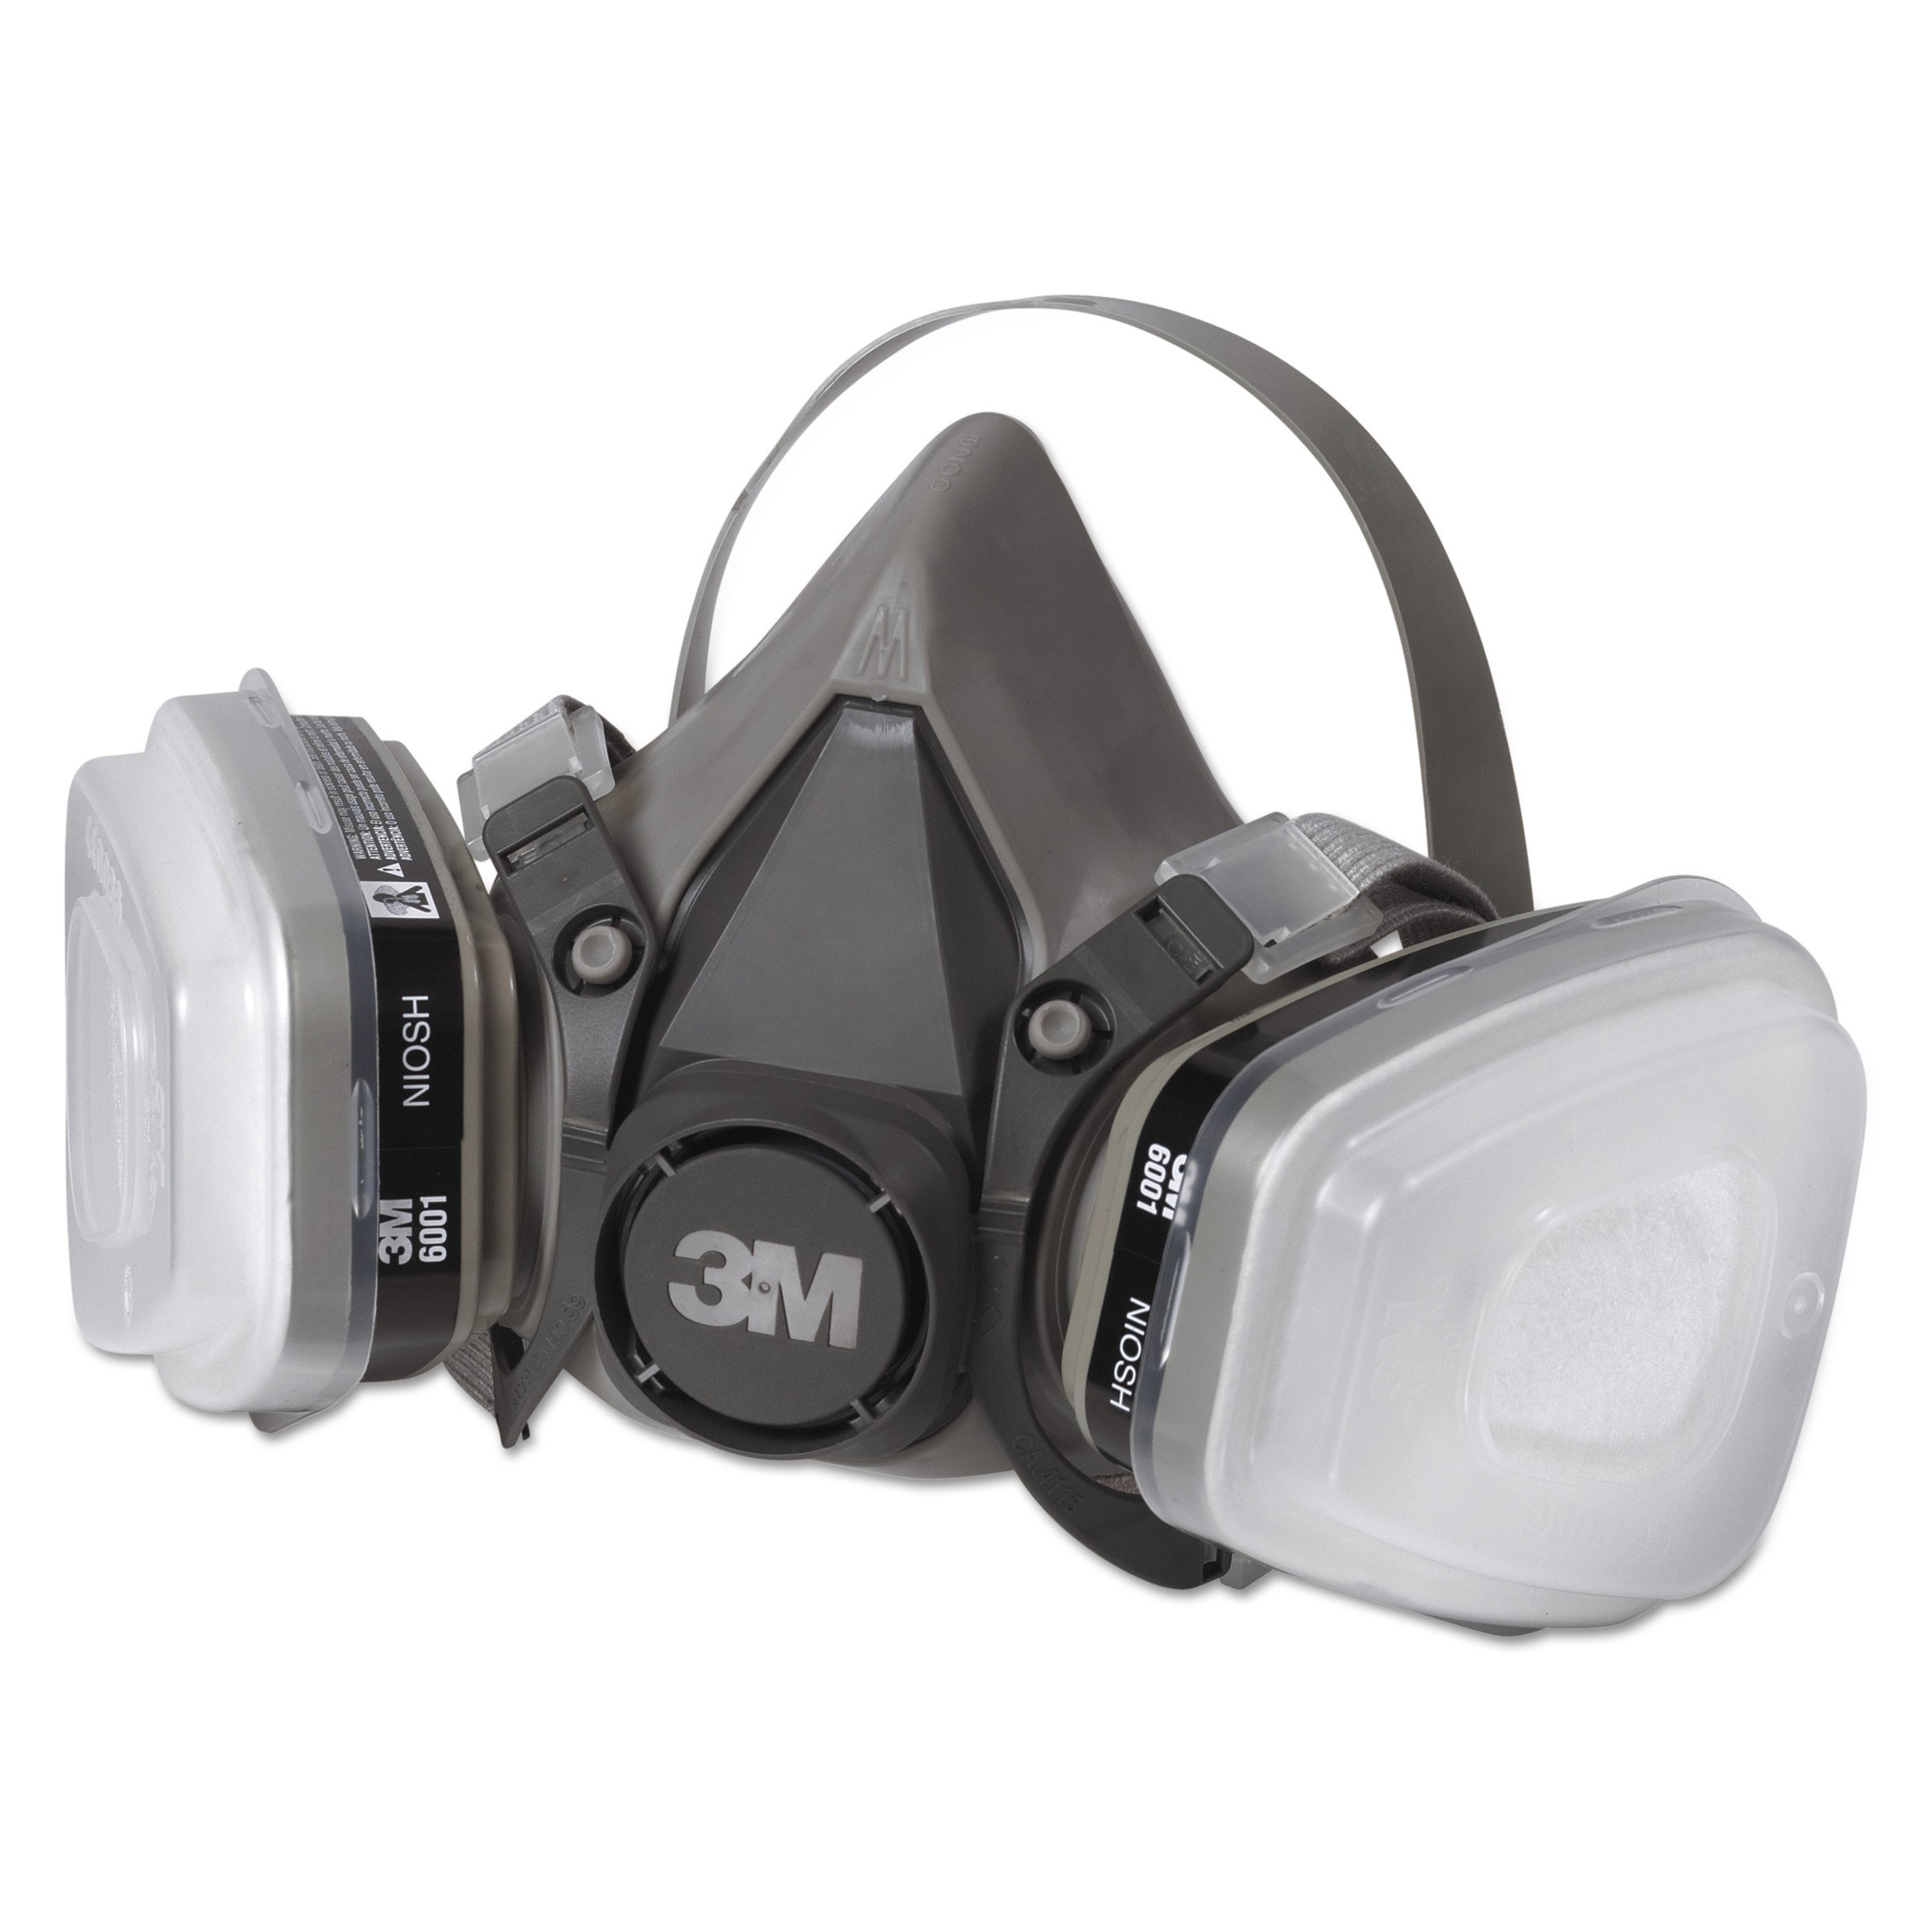 3M Paint Project Respirator, Small by 3M Safety